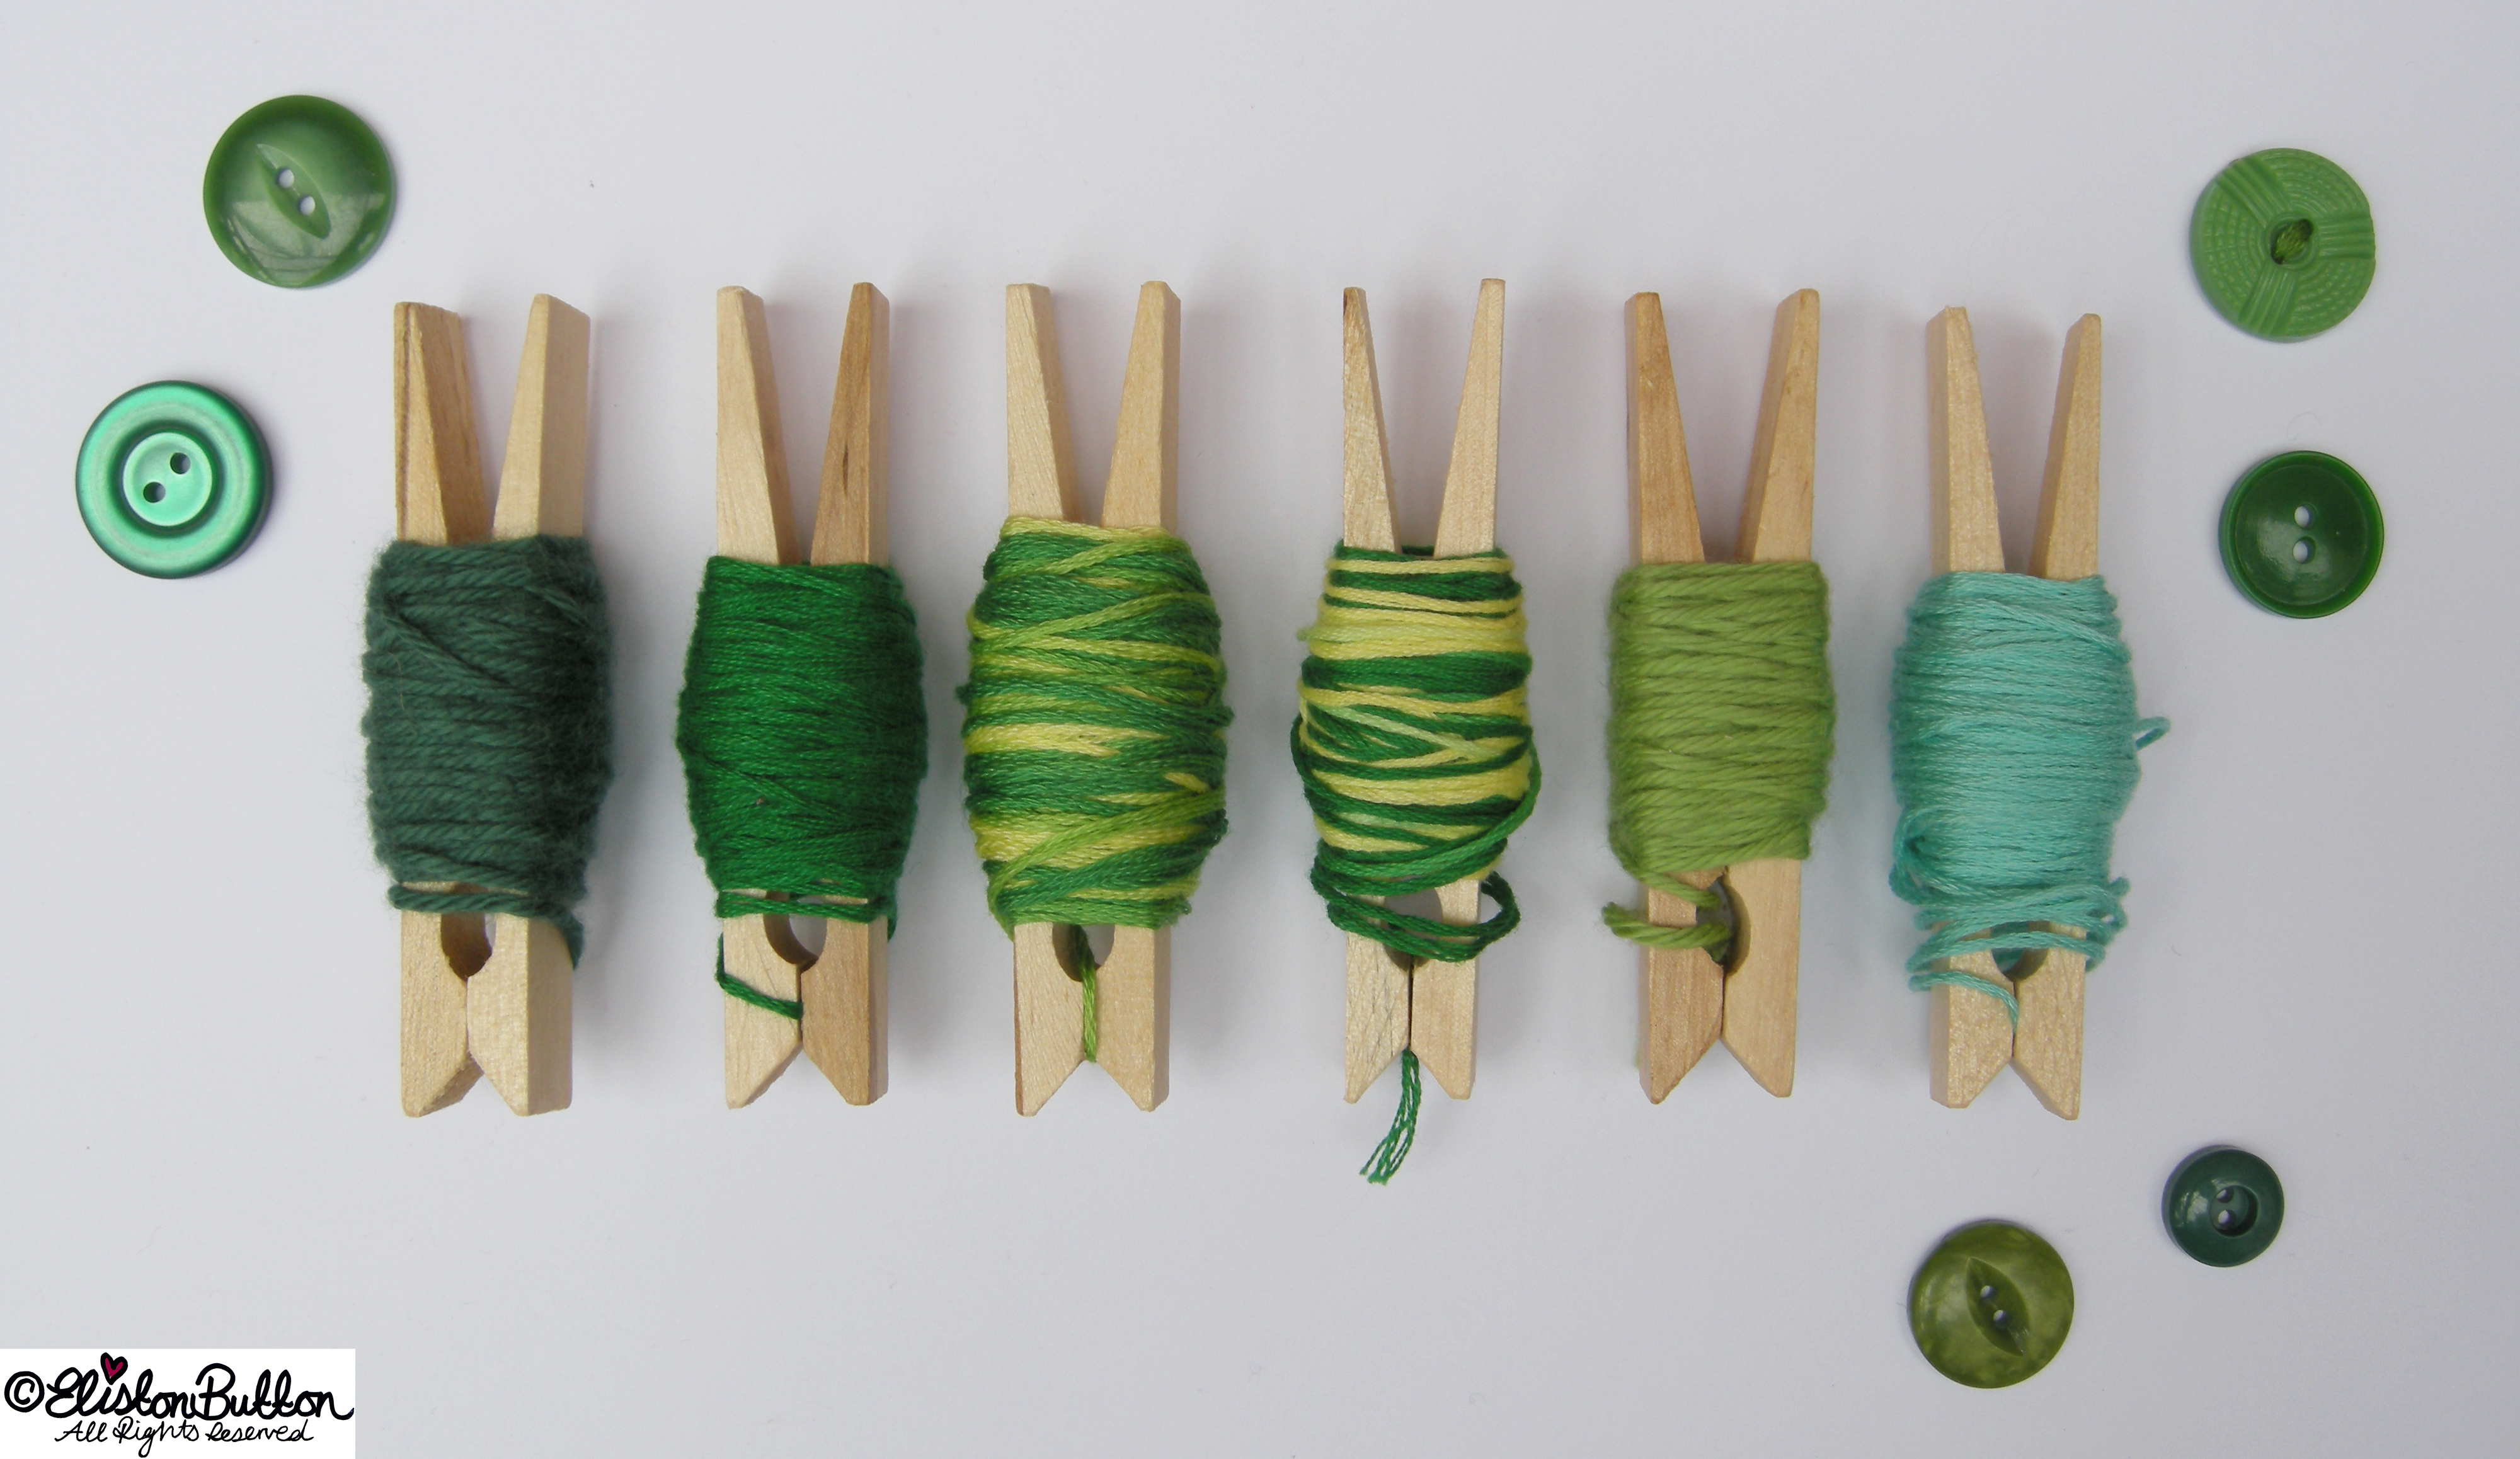 Gorgeous Green Embroidery Thread Colour Palette on Pegs - Embroidery Thread Art at www.elistonbutton.com - Eliston Button - That Crafty Kid – Art, Design, Craft & Adventure.